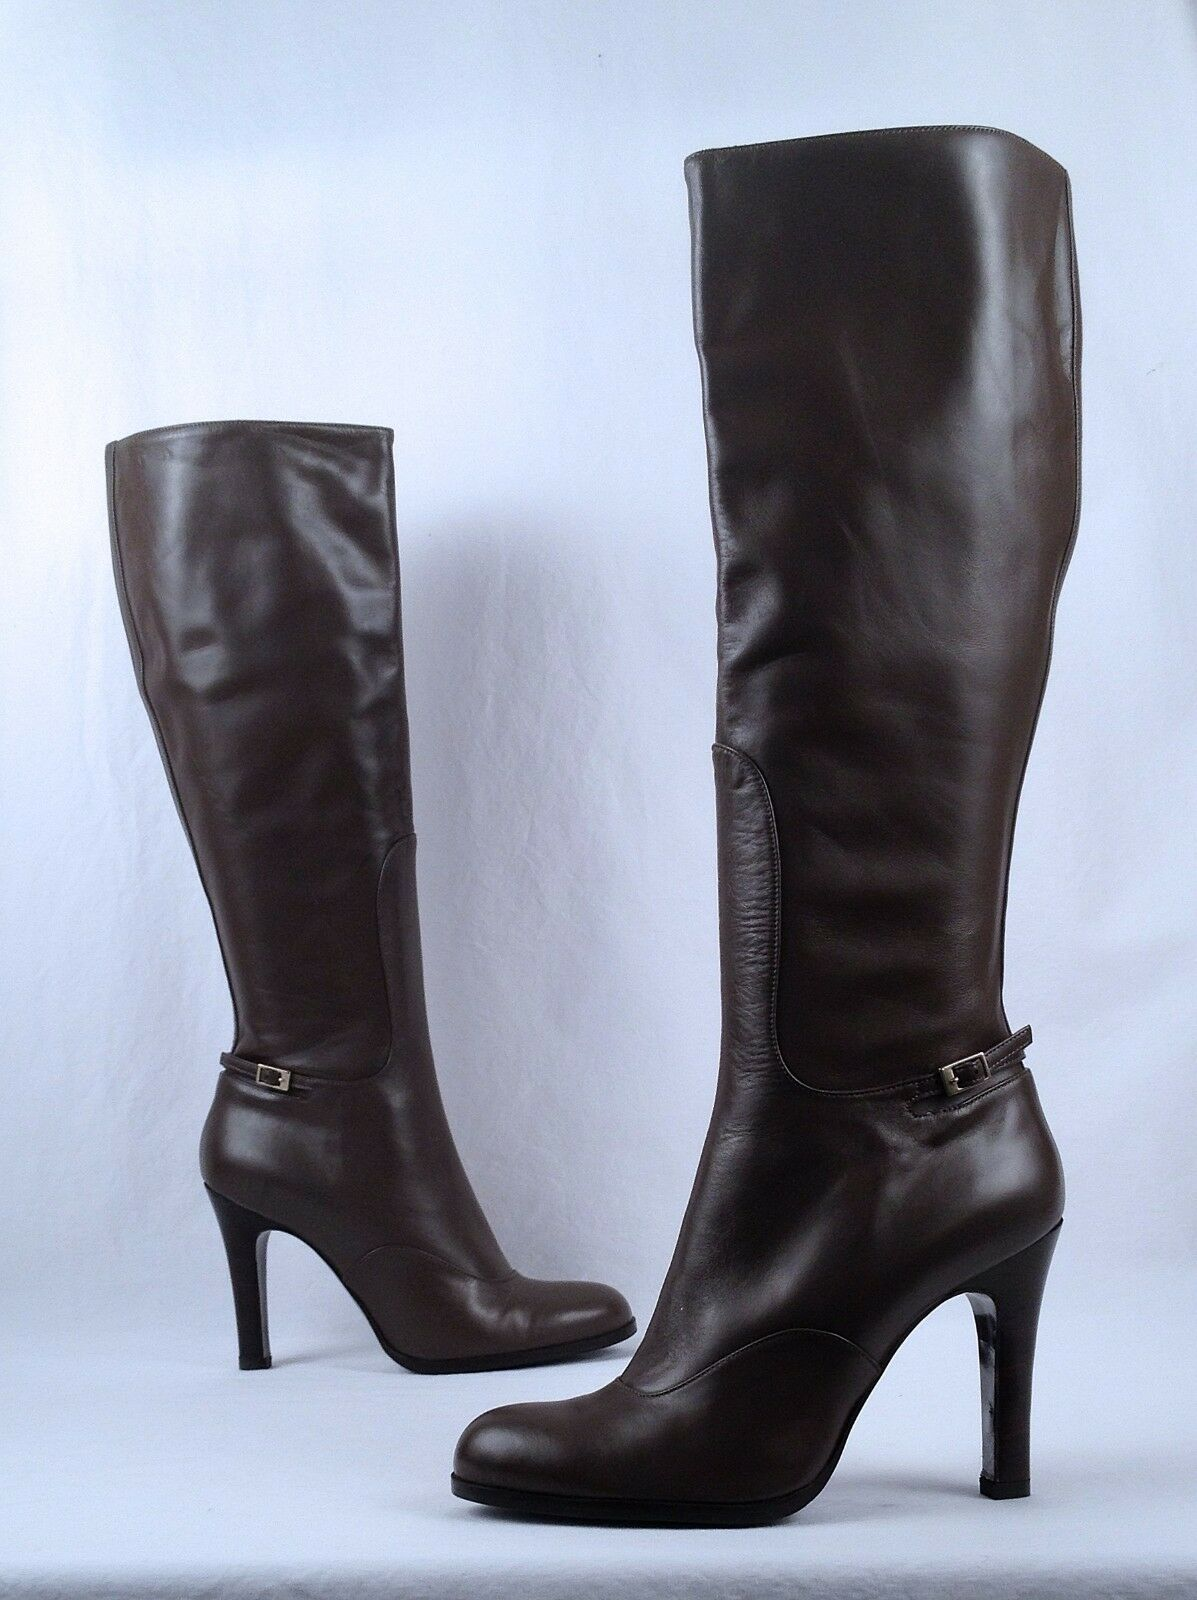 NEW   LK Bennett Bennett Bennett Tall Boot- Grau- Größe 10.5 US/ 40.5 UK 950 (B56) 0000da